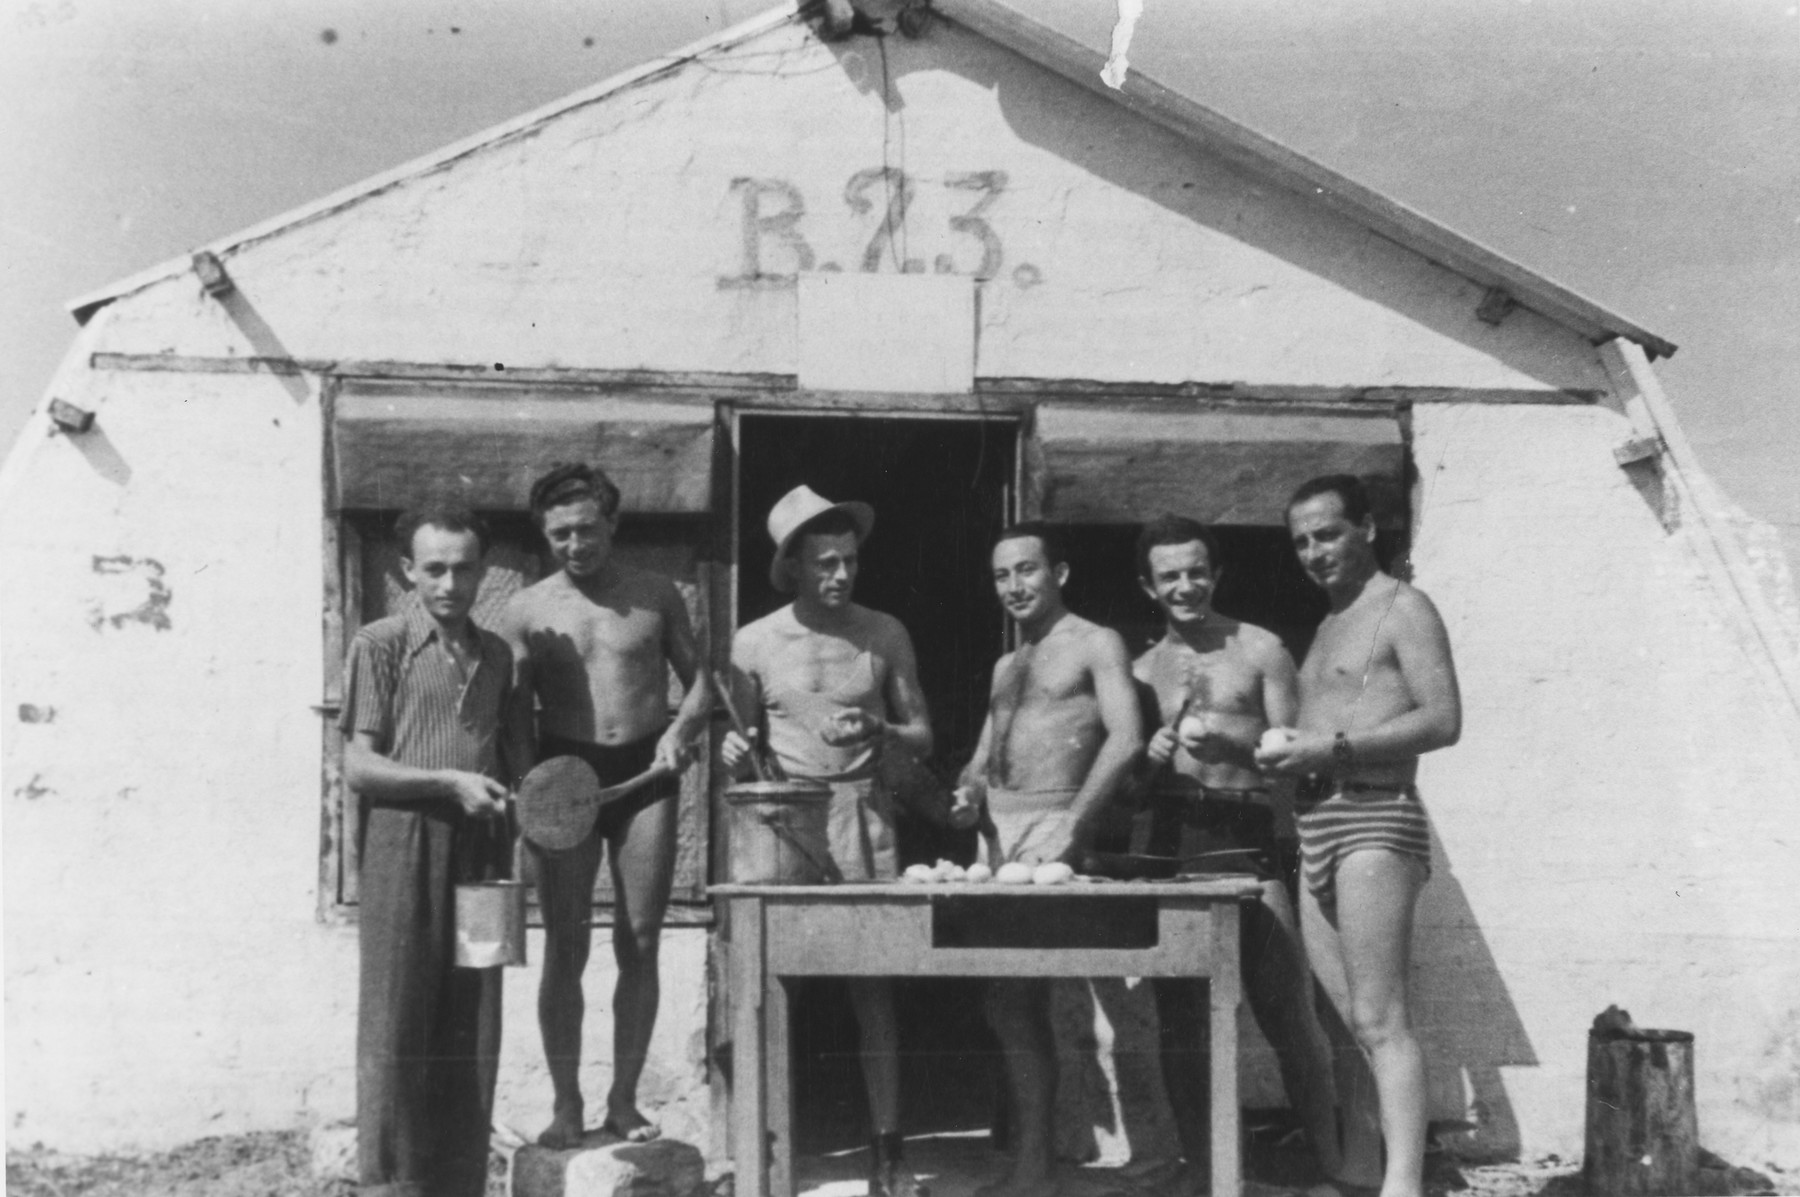 Jewish DPs peel potatoes outside barracks 23 in Santa Maria di Leuca.  Pinkus Gipsman is pictured second from the left.